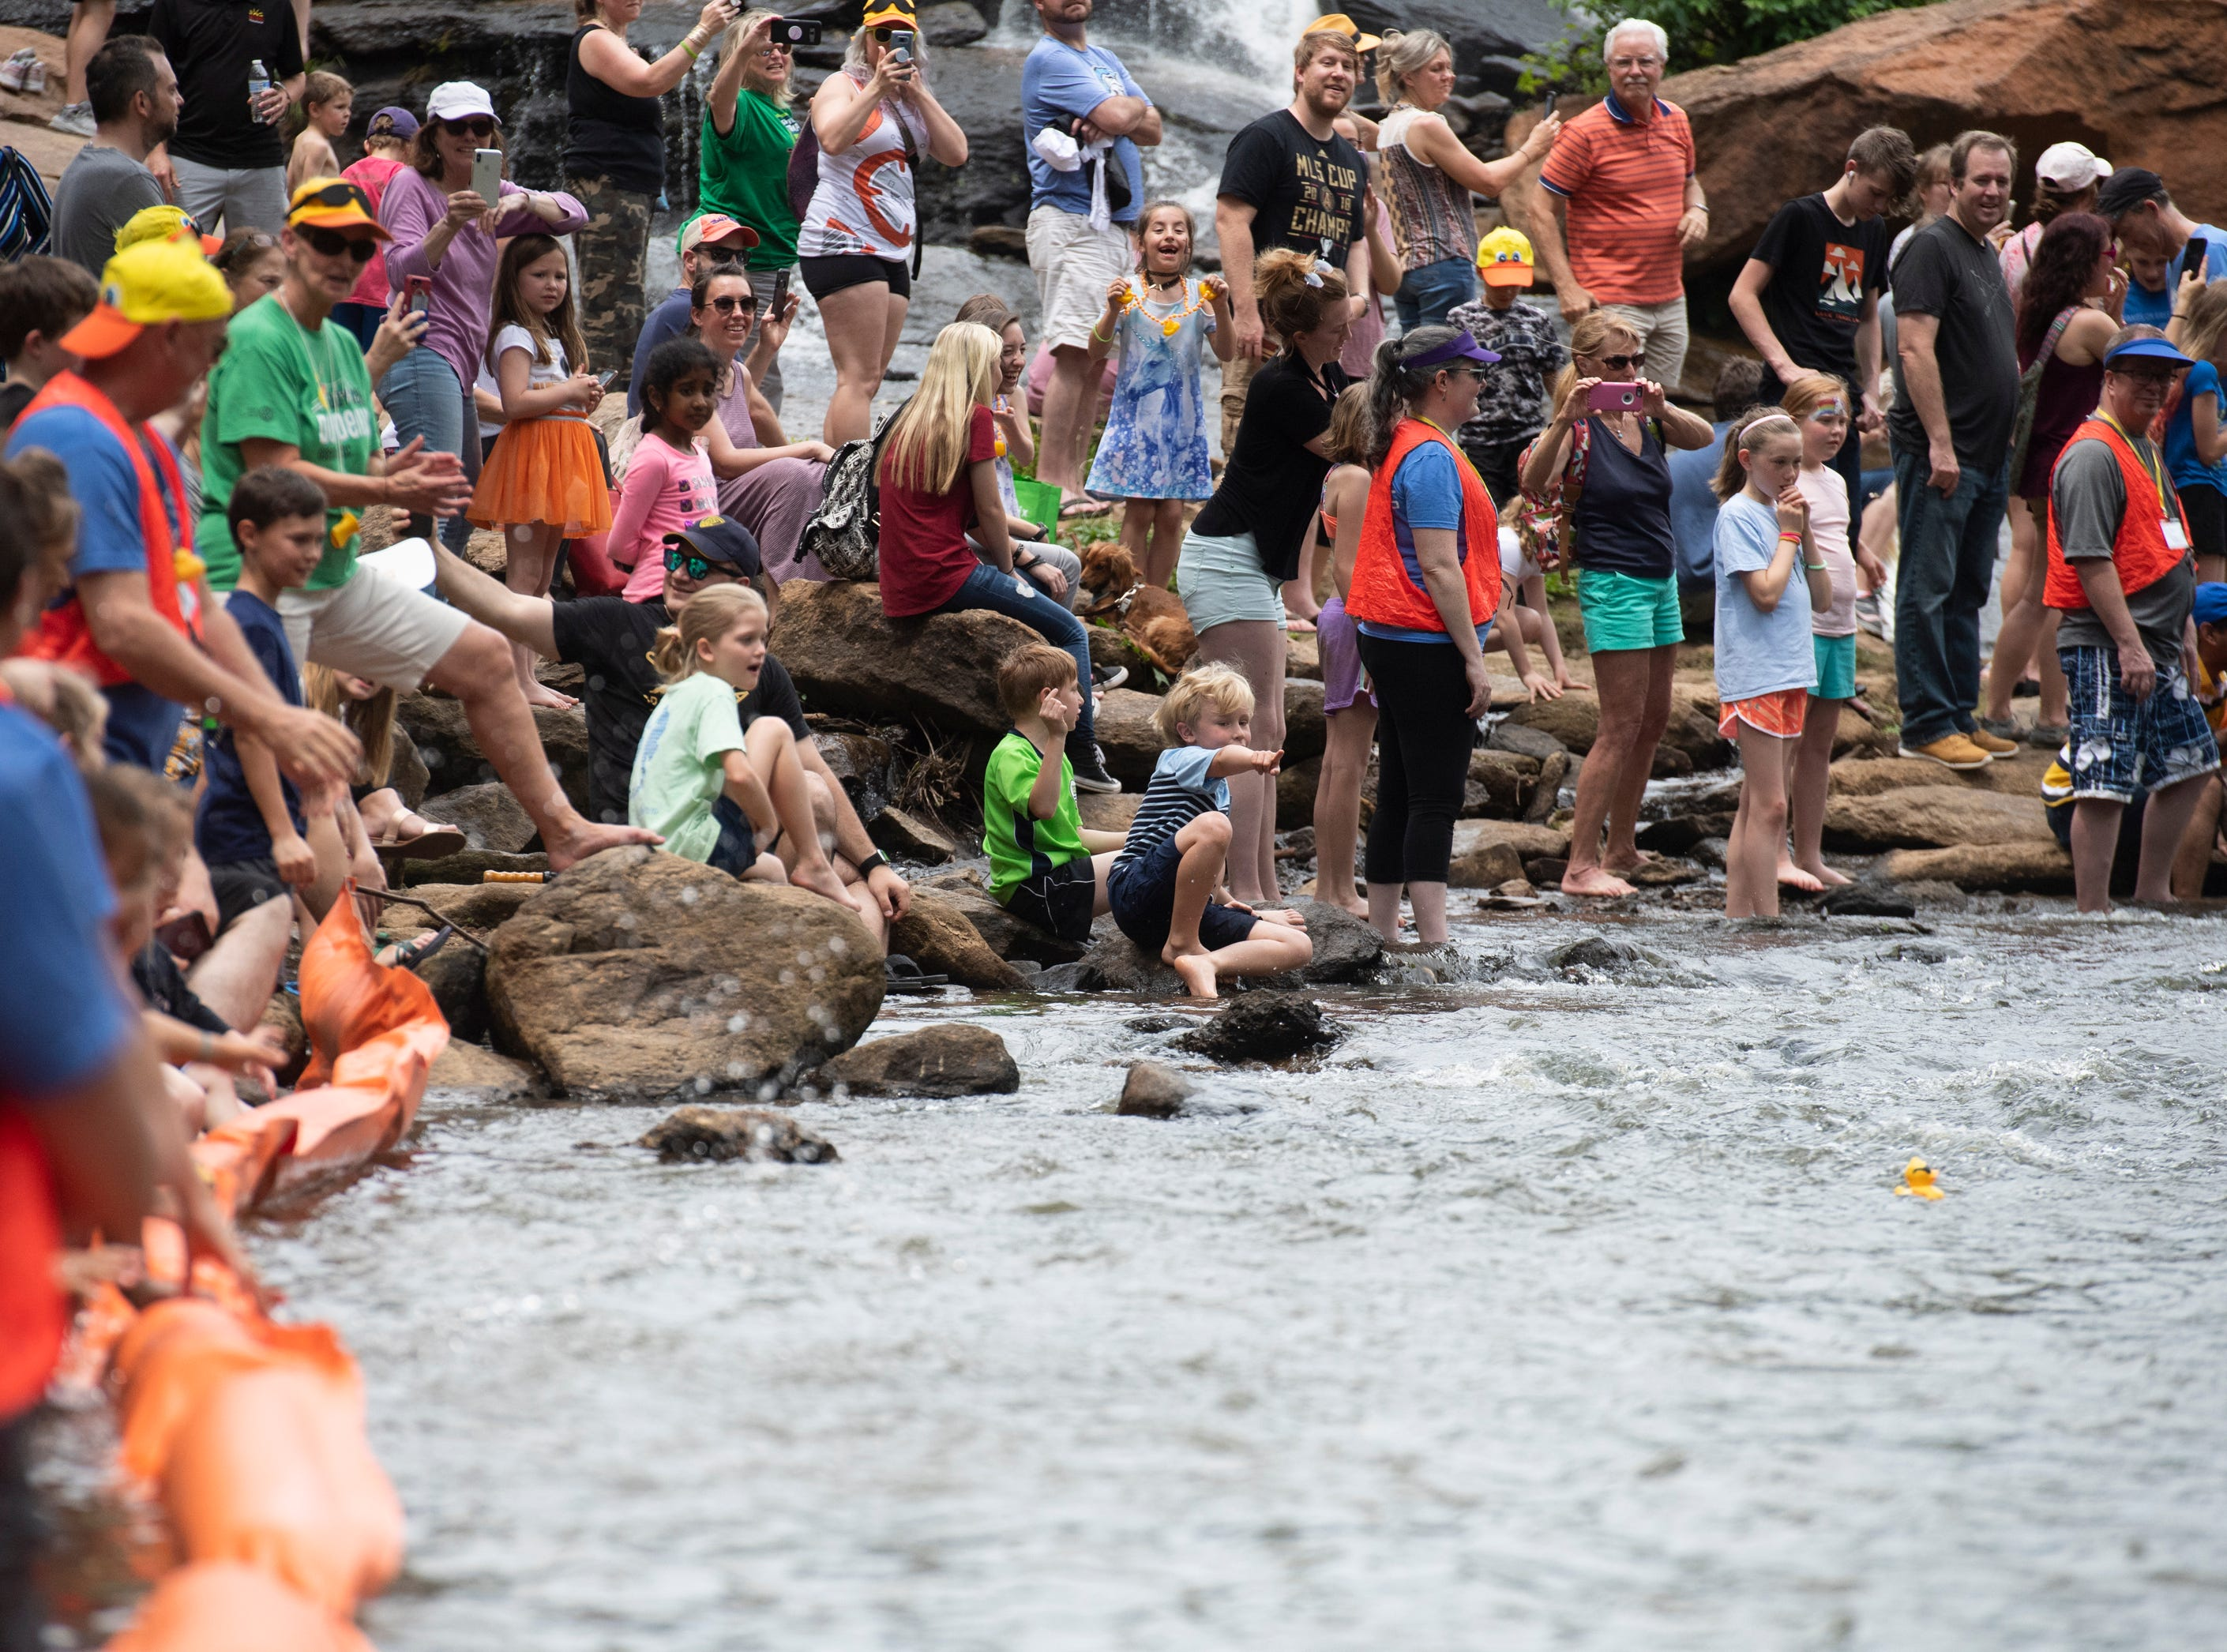 People watch as the first few rubber ducks take the lead during the 2019 Reedy River Duck Derby in Falls Park on the Reedy Saturday, May 4, 2019.